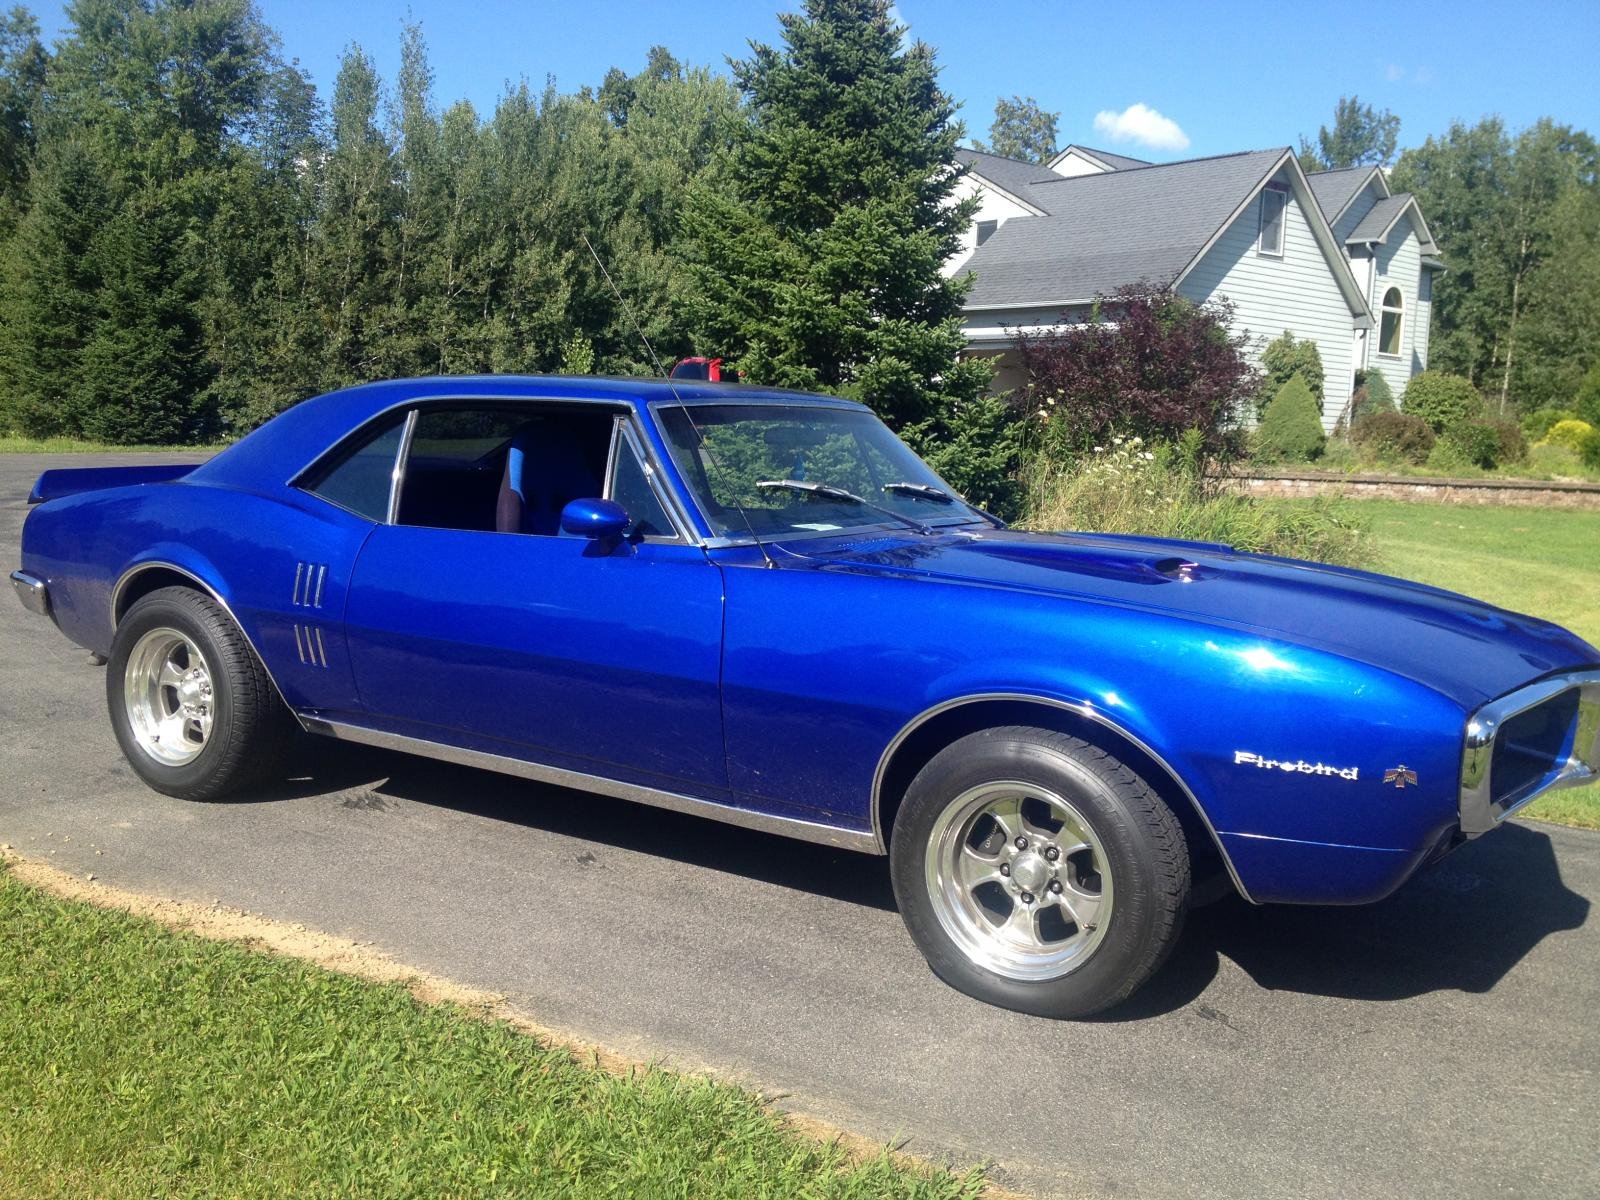 1967 Firebird powered by LS1 for sale $23 500 Syracuse NY